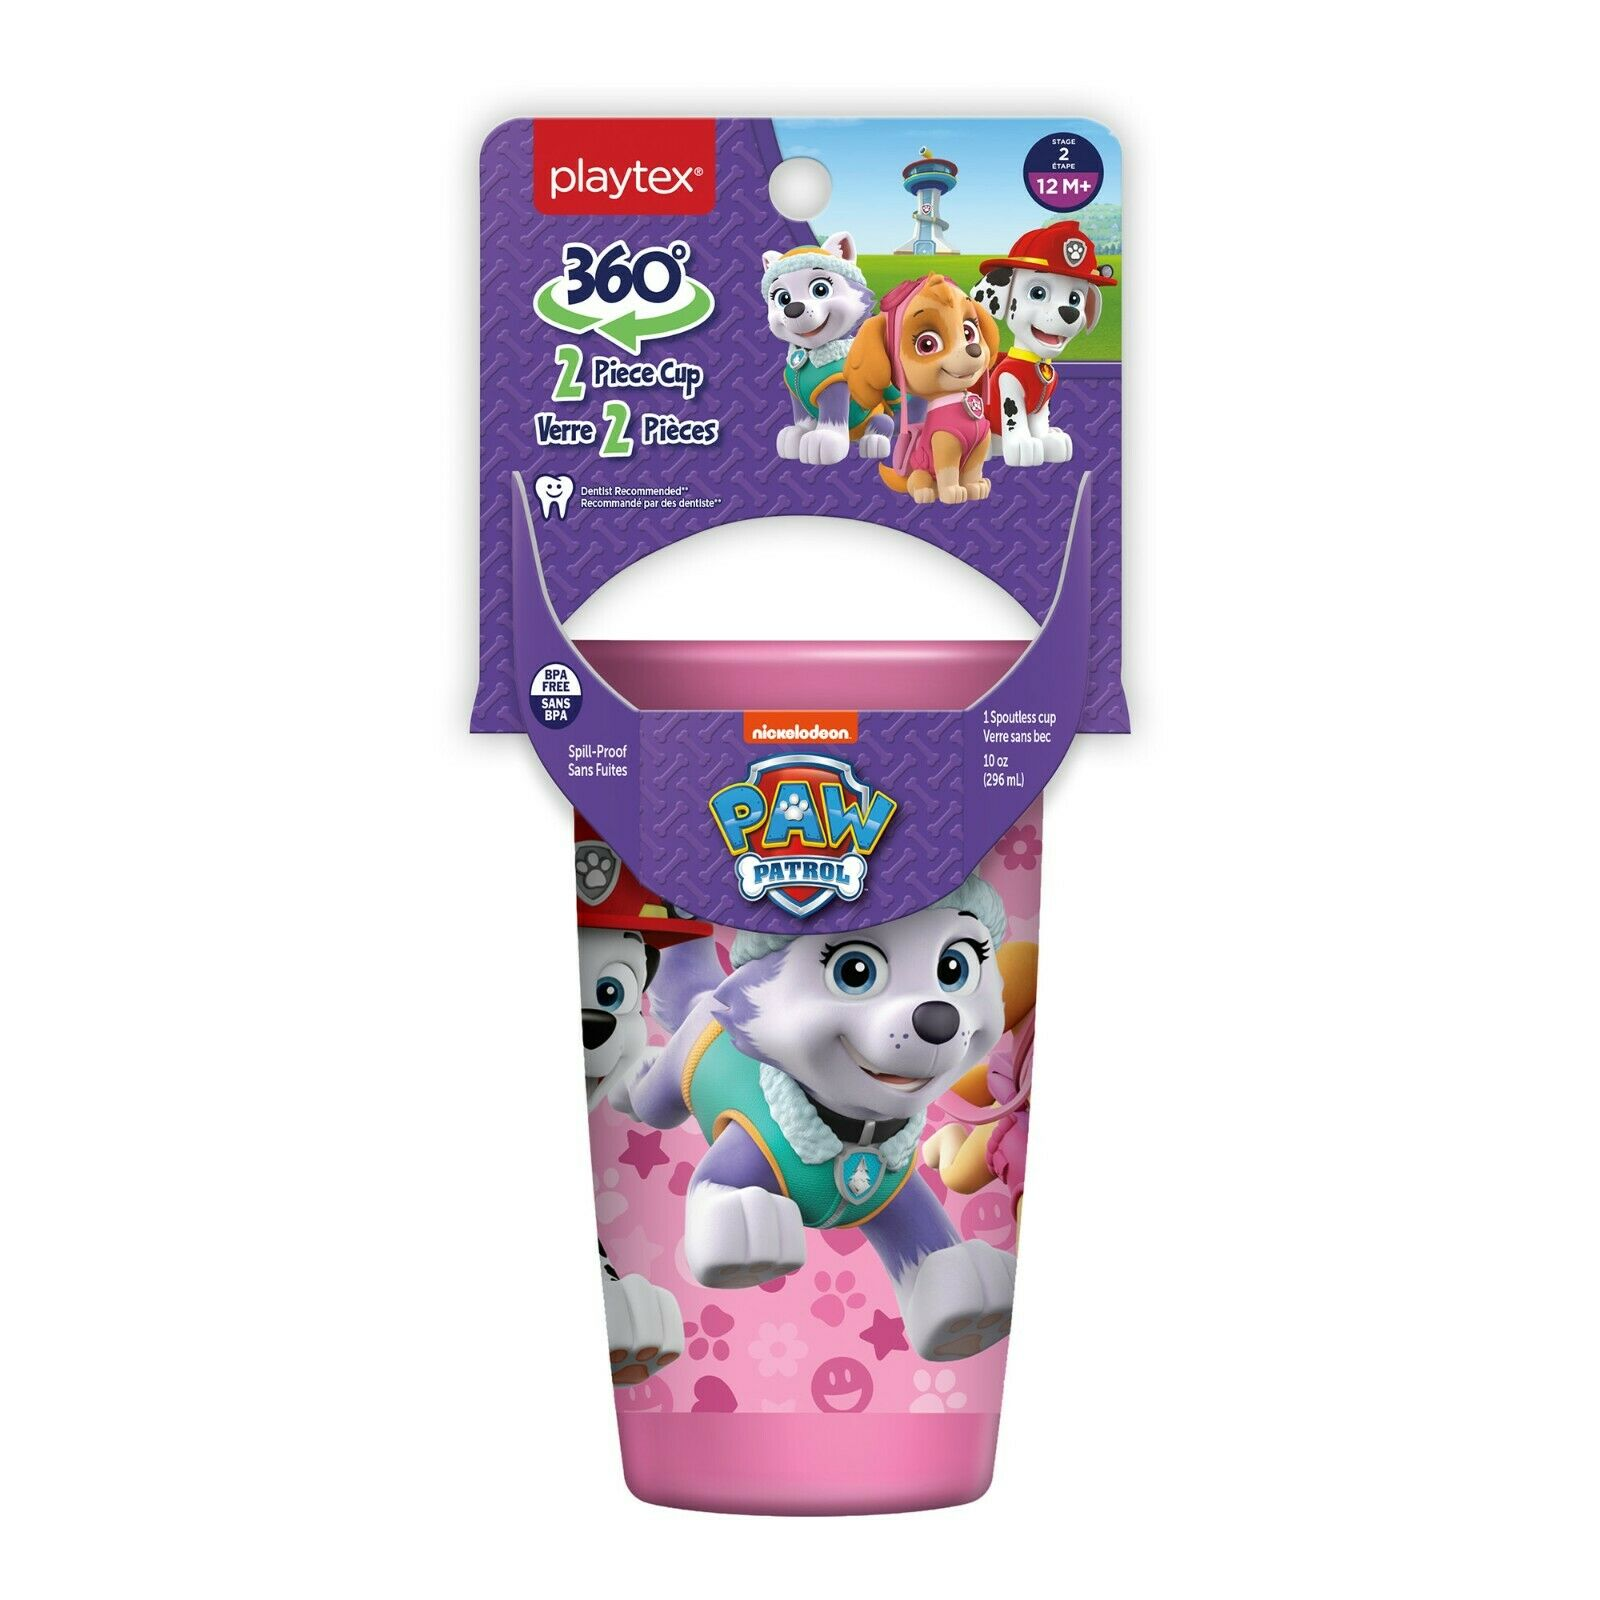 10 Oz Leak-Proof 2Count Break-Proof Spoutless Cup for Girls Playtex Sipsters Stage 2 360 Degree Spill-Proof